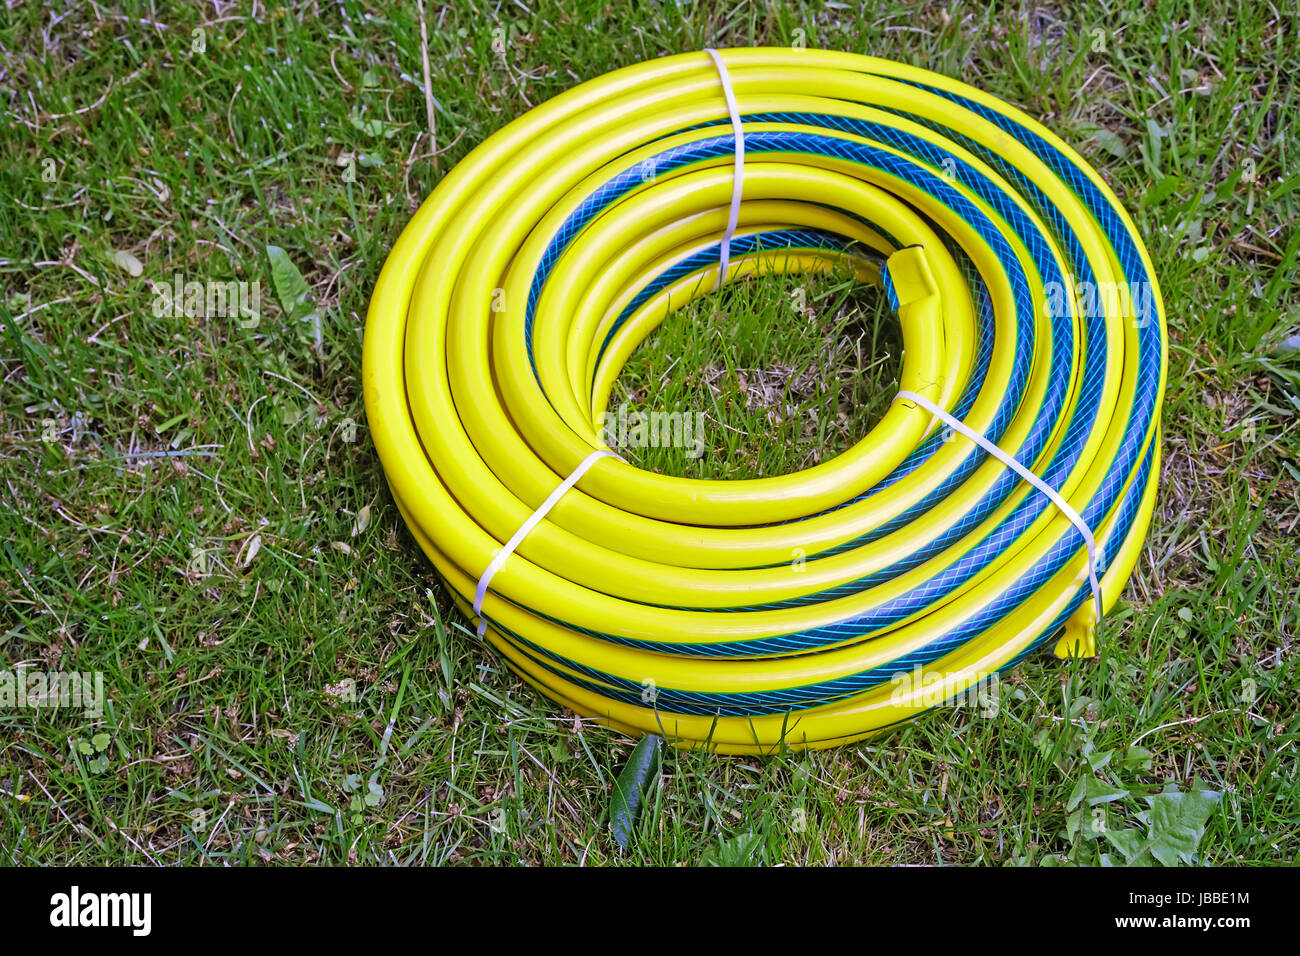 In The Garden Lies Coiled In The Form Of A Round Plastic Water Hose For  Watering Plants In The Garden And The Vegetable Garden.